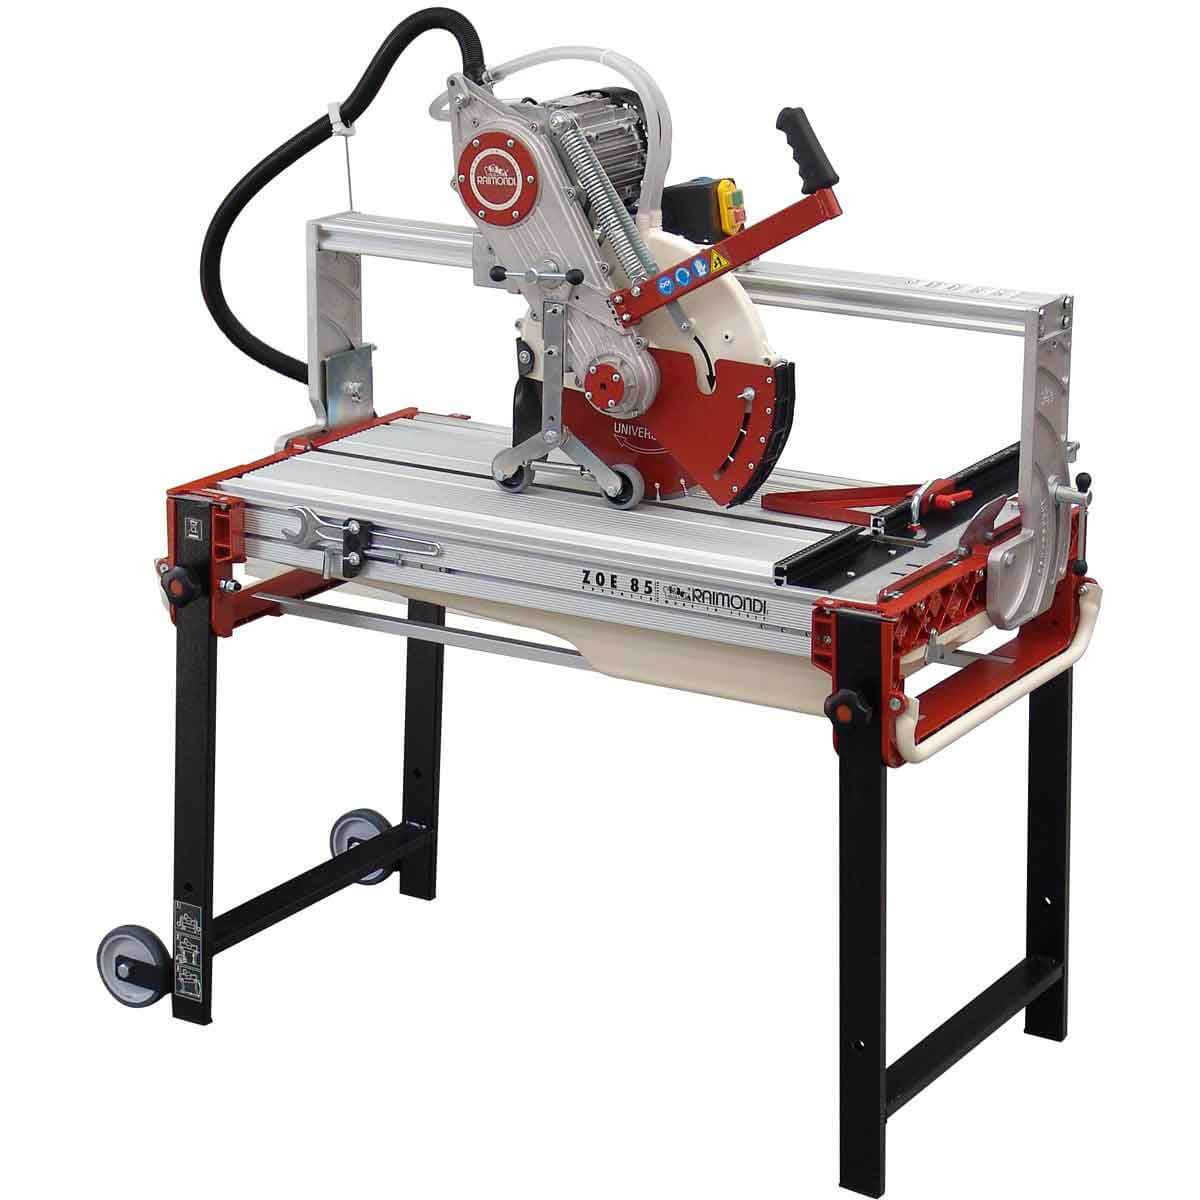 Raimondi Zipper Advanced 85 Rail Saw